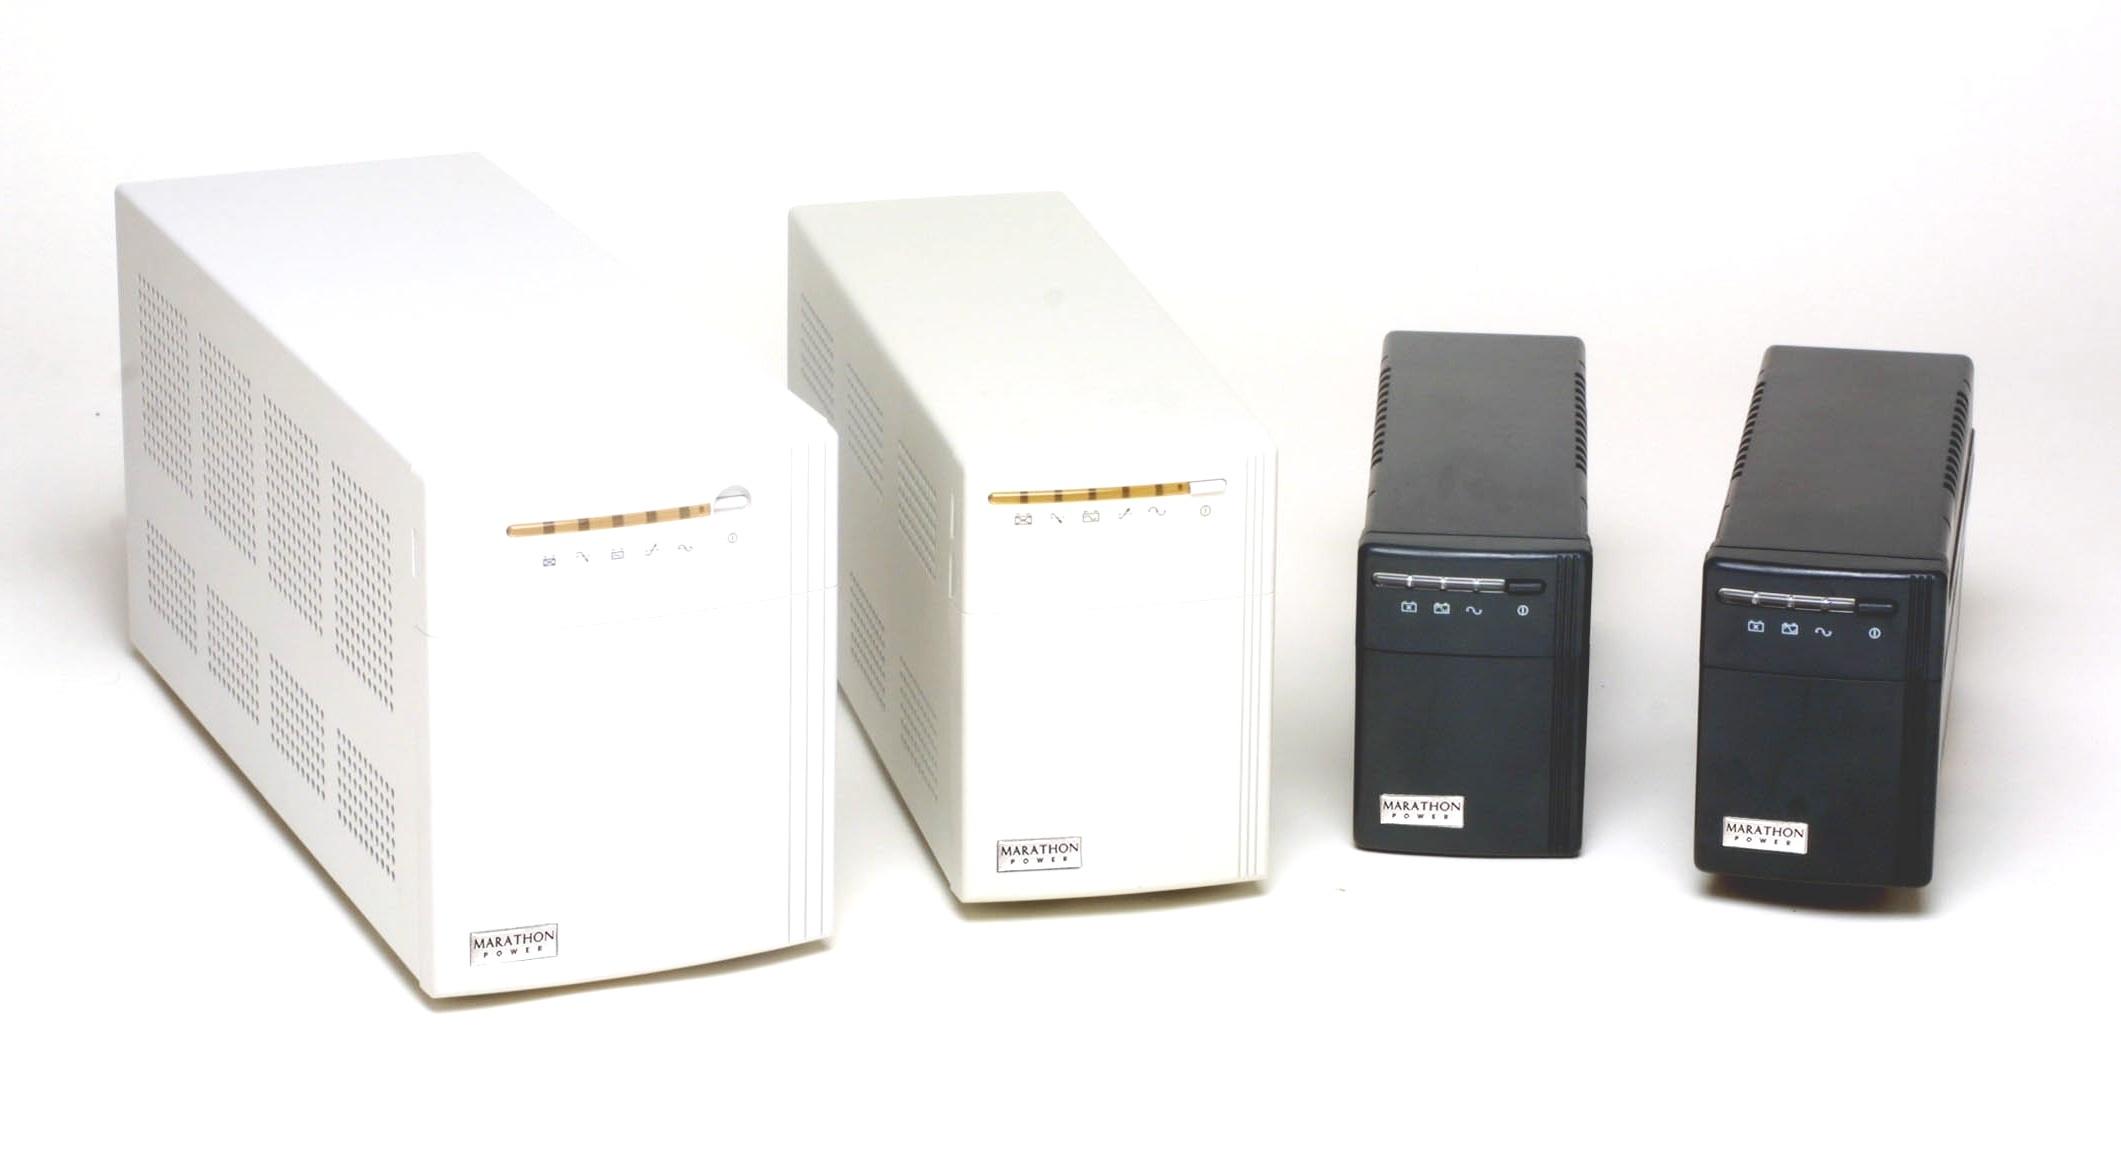 SPRINT SERIES - Compact, reliable battery backup with AVR. Ideal for general commercial and industrial applications.